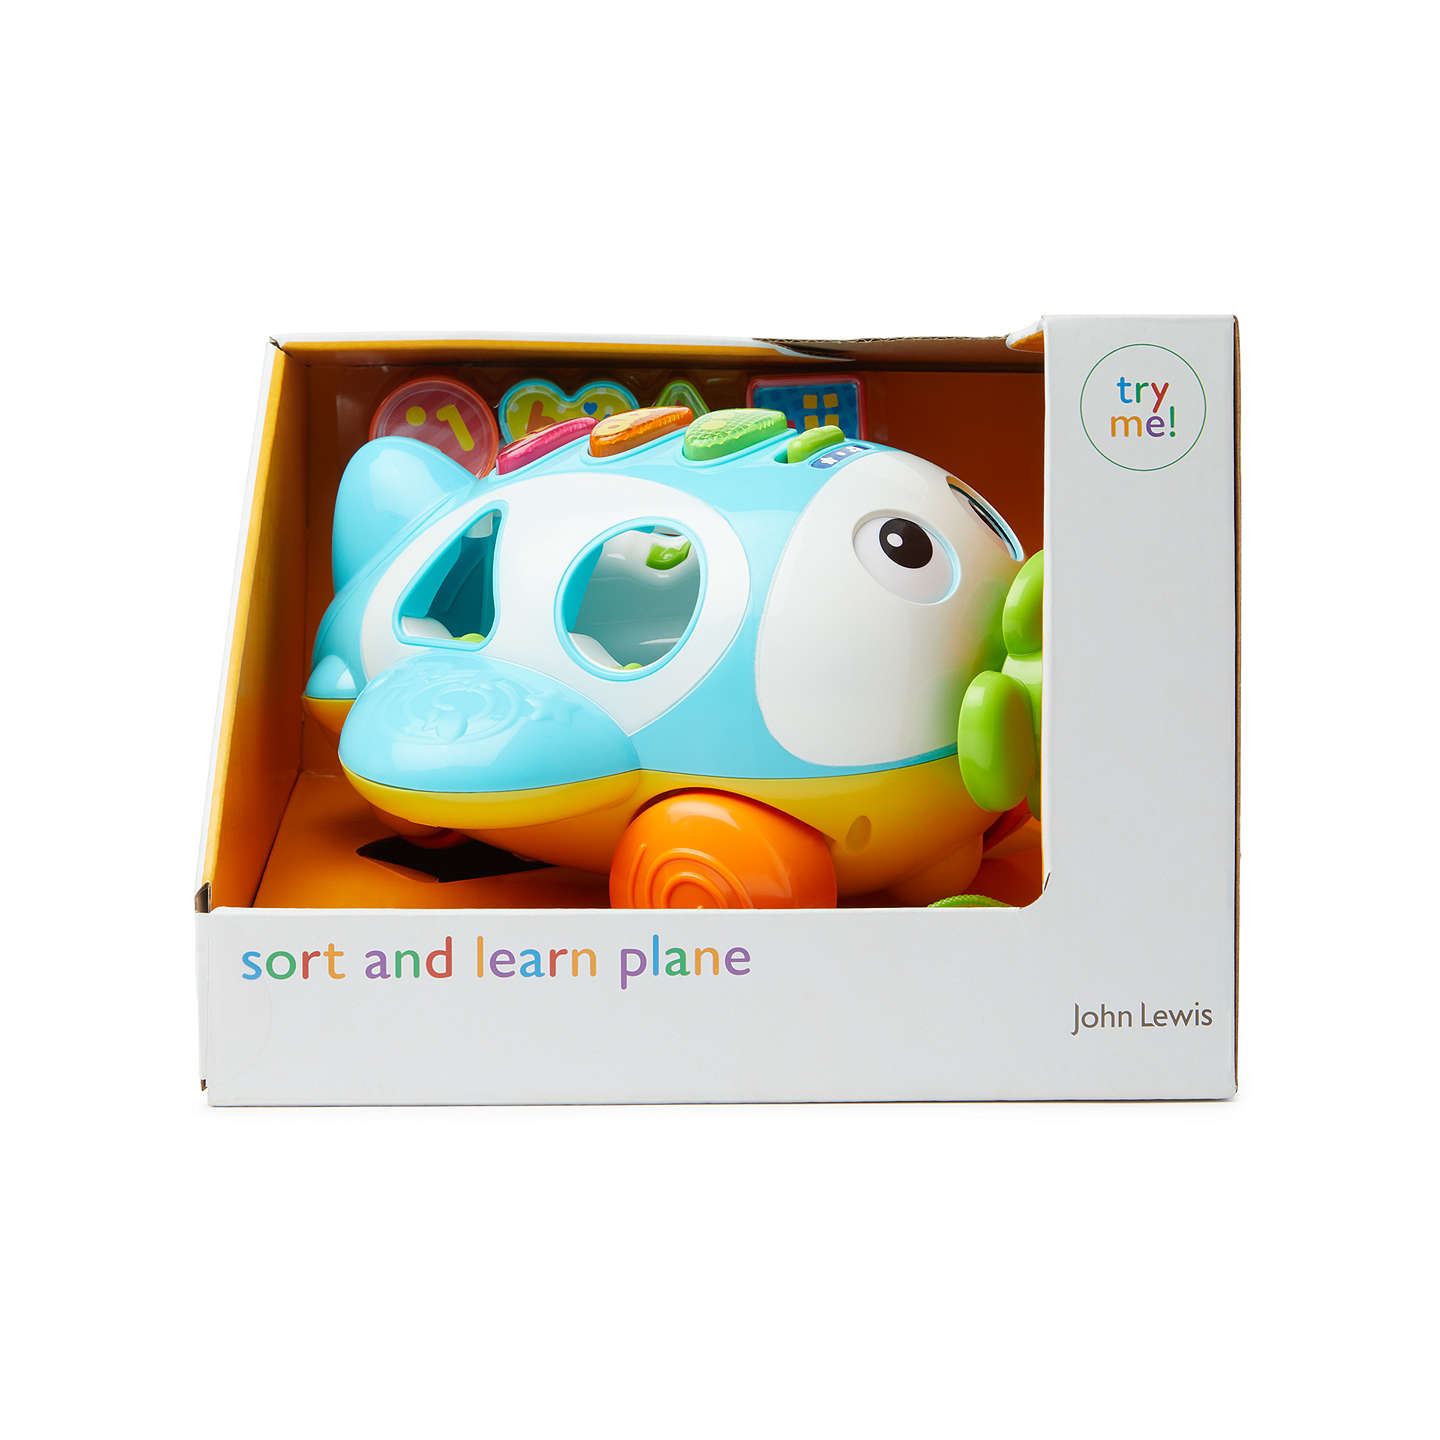 BuyJohn Lewis Sort & Learn Pull-Along Plane Toy Online at johnlewis.com